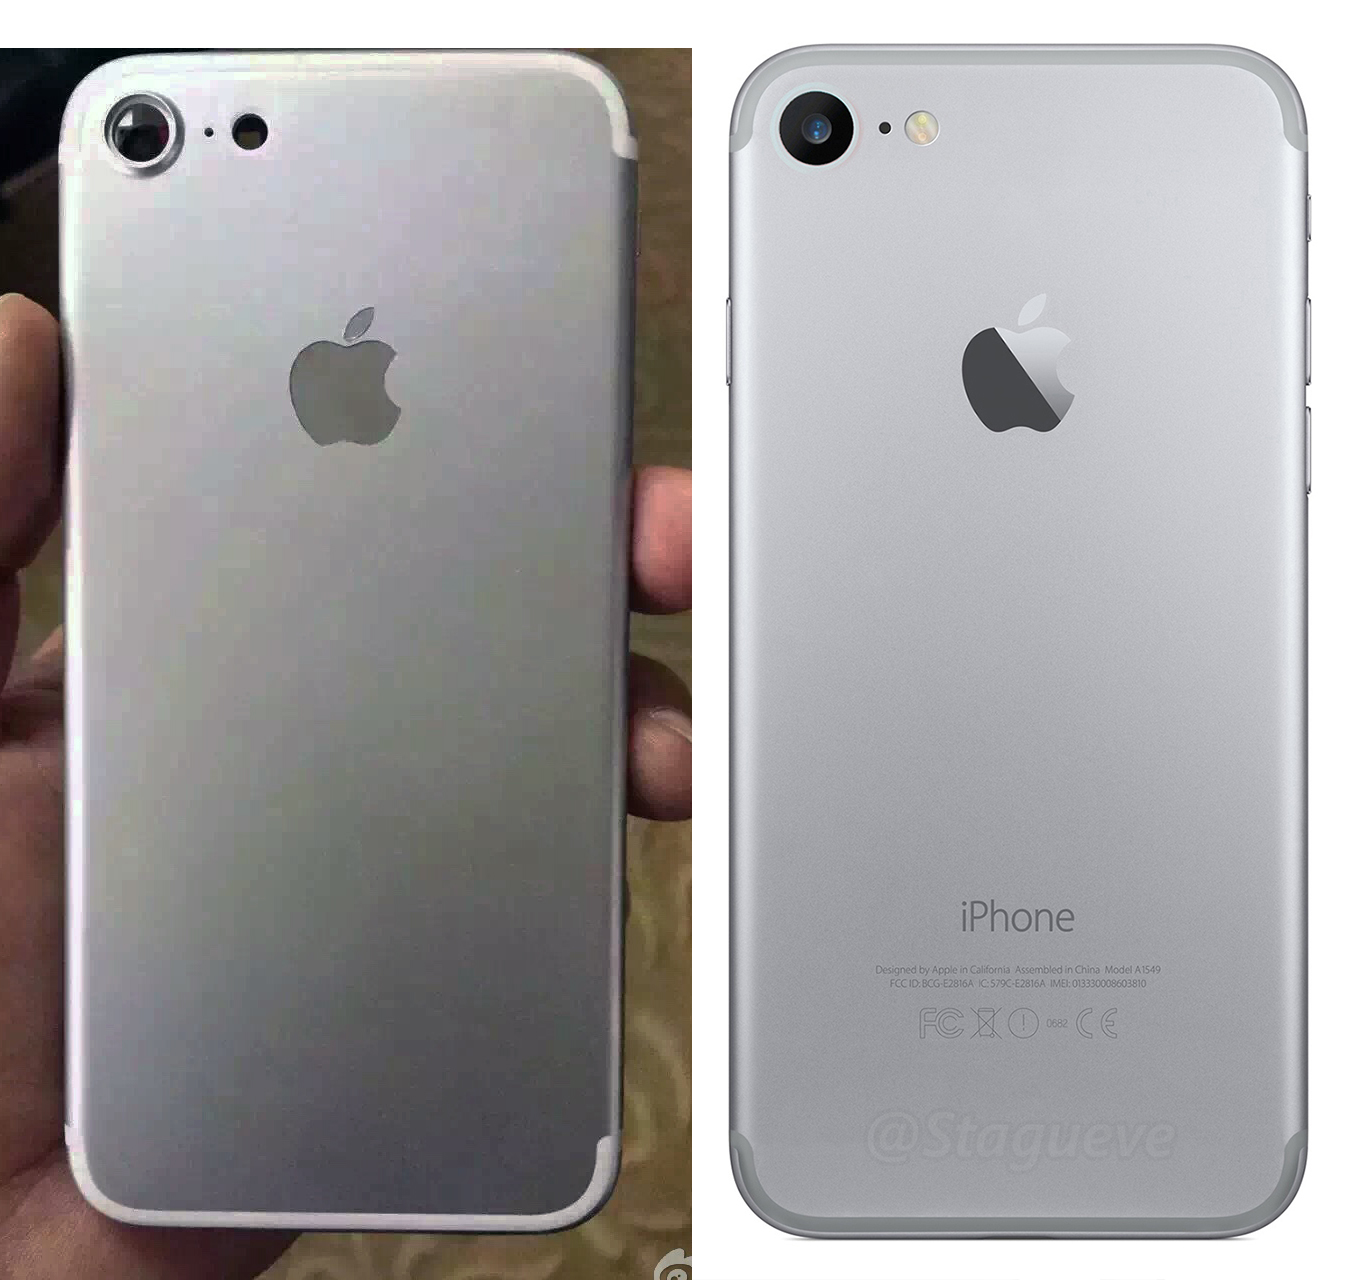 iPhone-7-Leak-vs-iPhone-7-Render.jpg